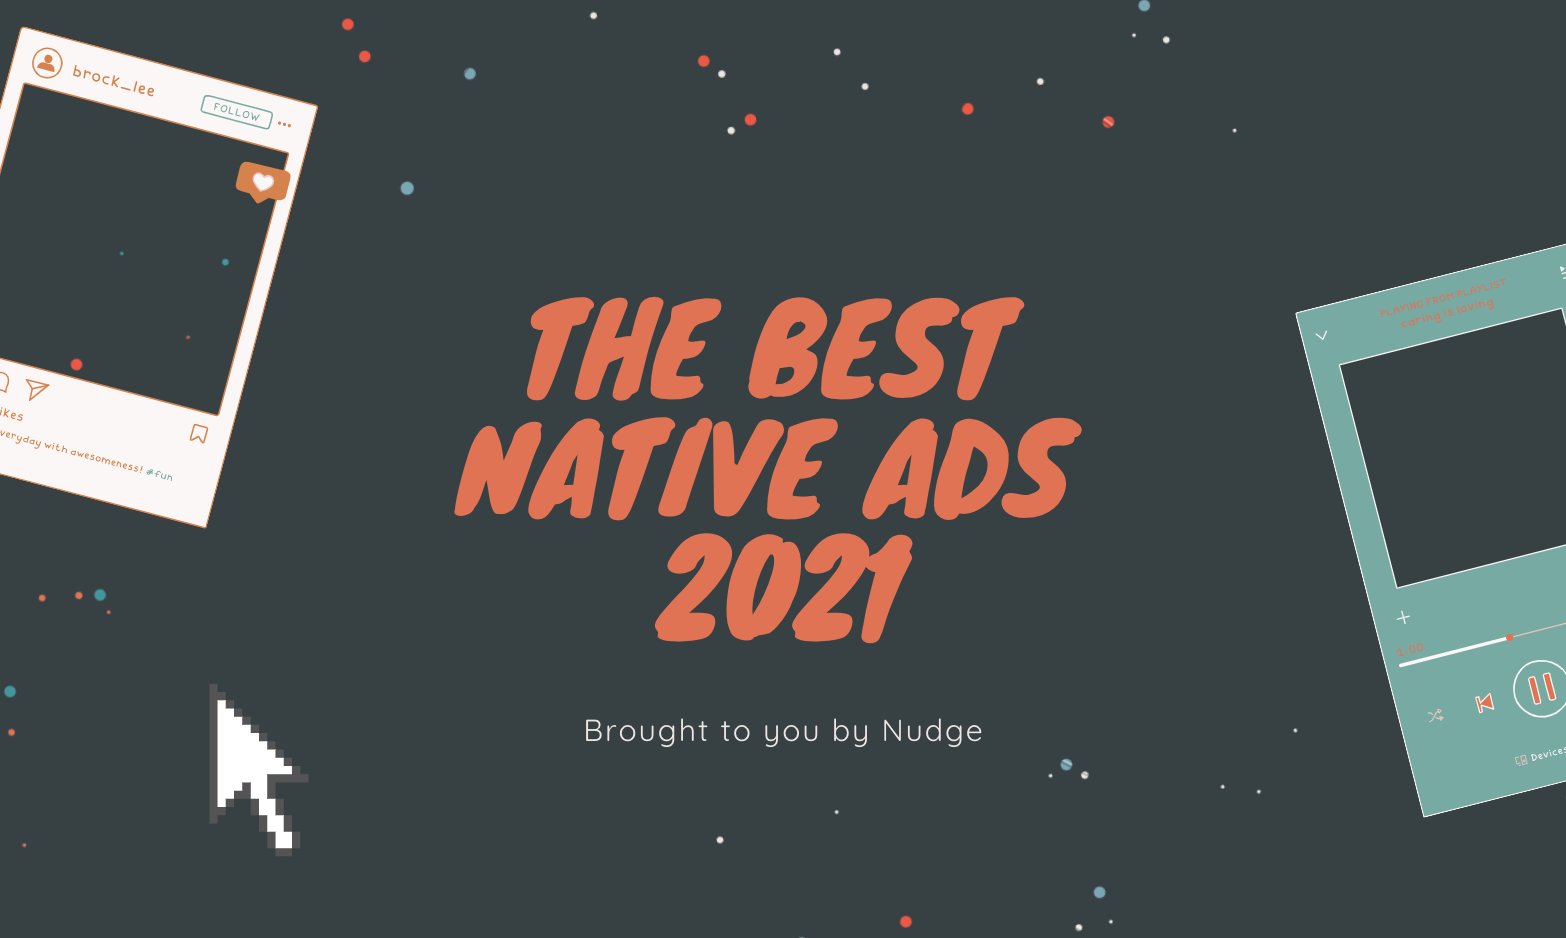 The best native advertising examples of 2021